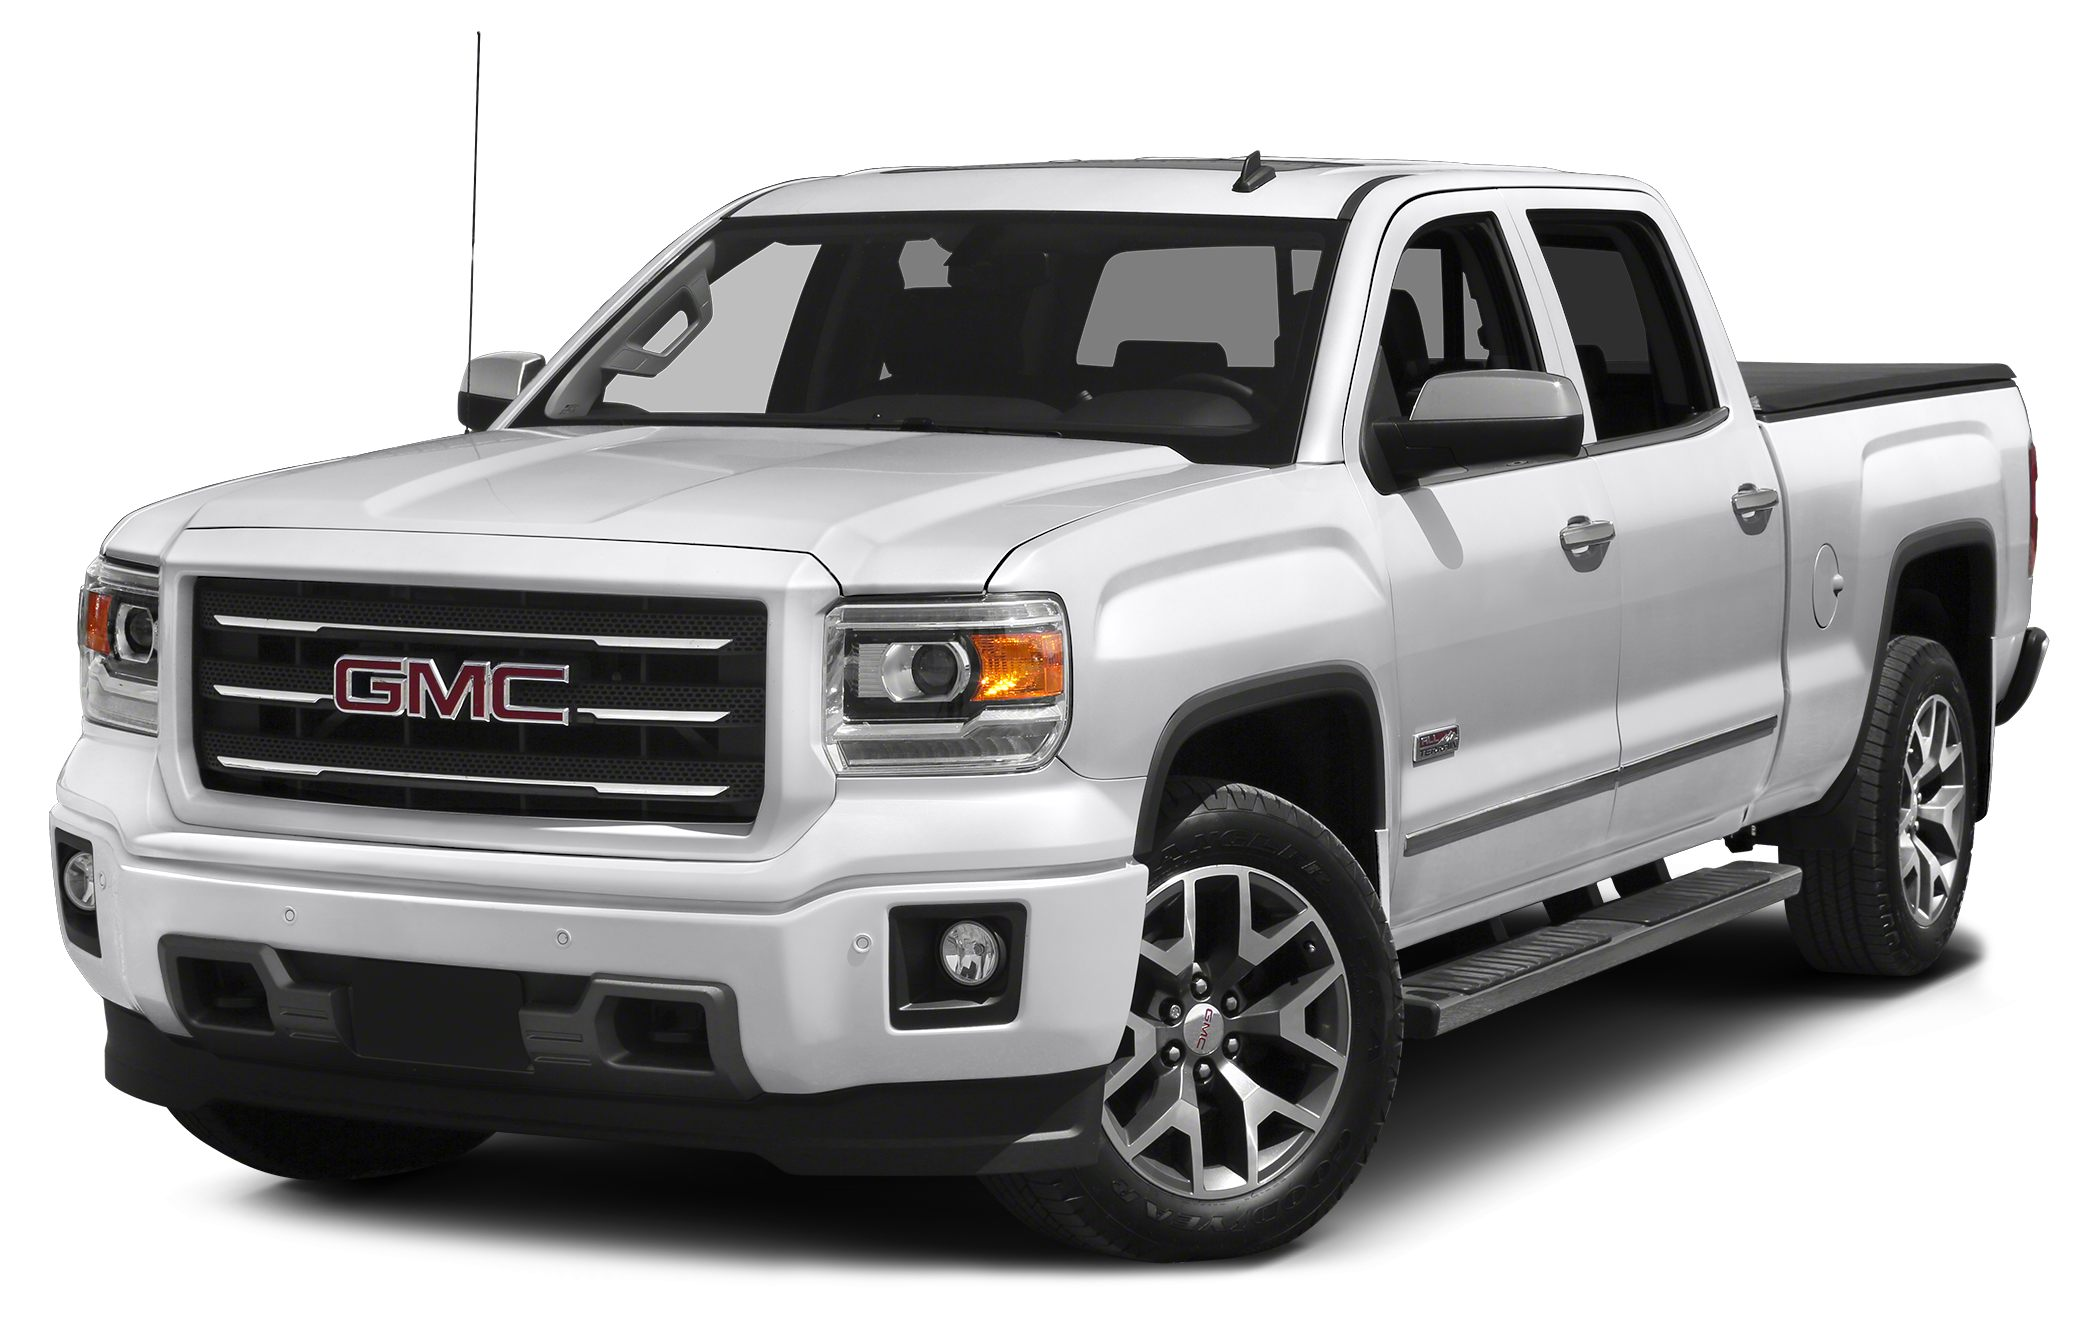 2015 GMC Sierra 1500 SLT EPA 21 MPG Hwy15 MPG City Excellent Condition GREAT MILES 13992 Heat